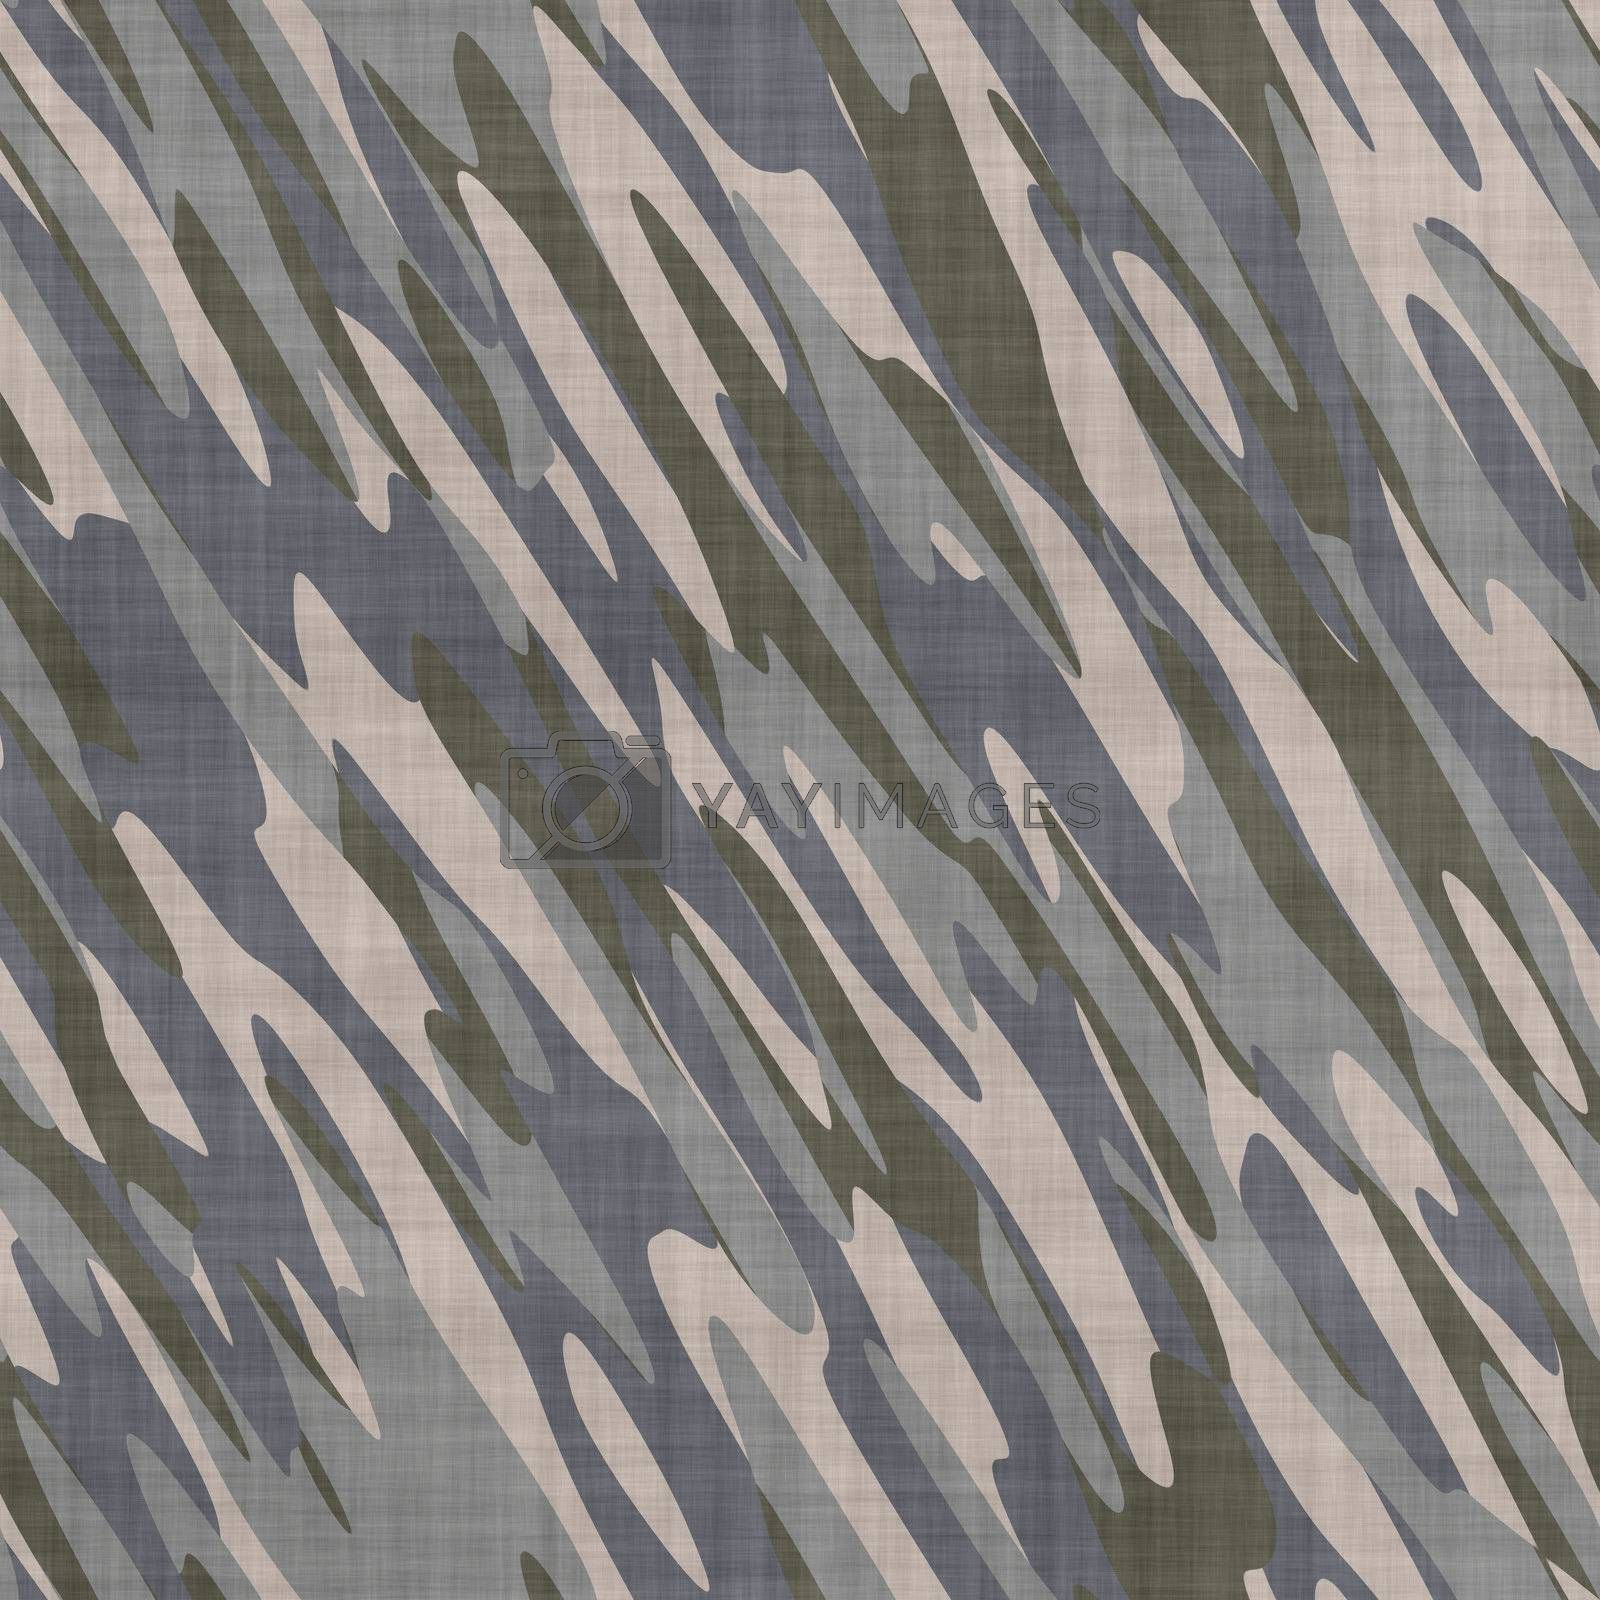 grey camouflage fabric background, seamlessly tillable